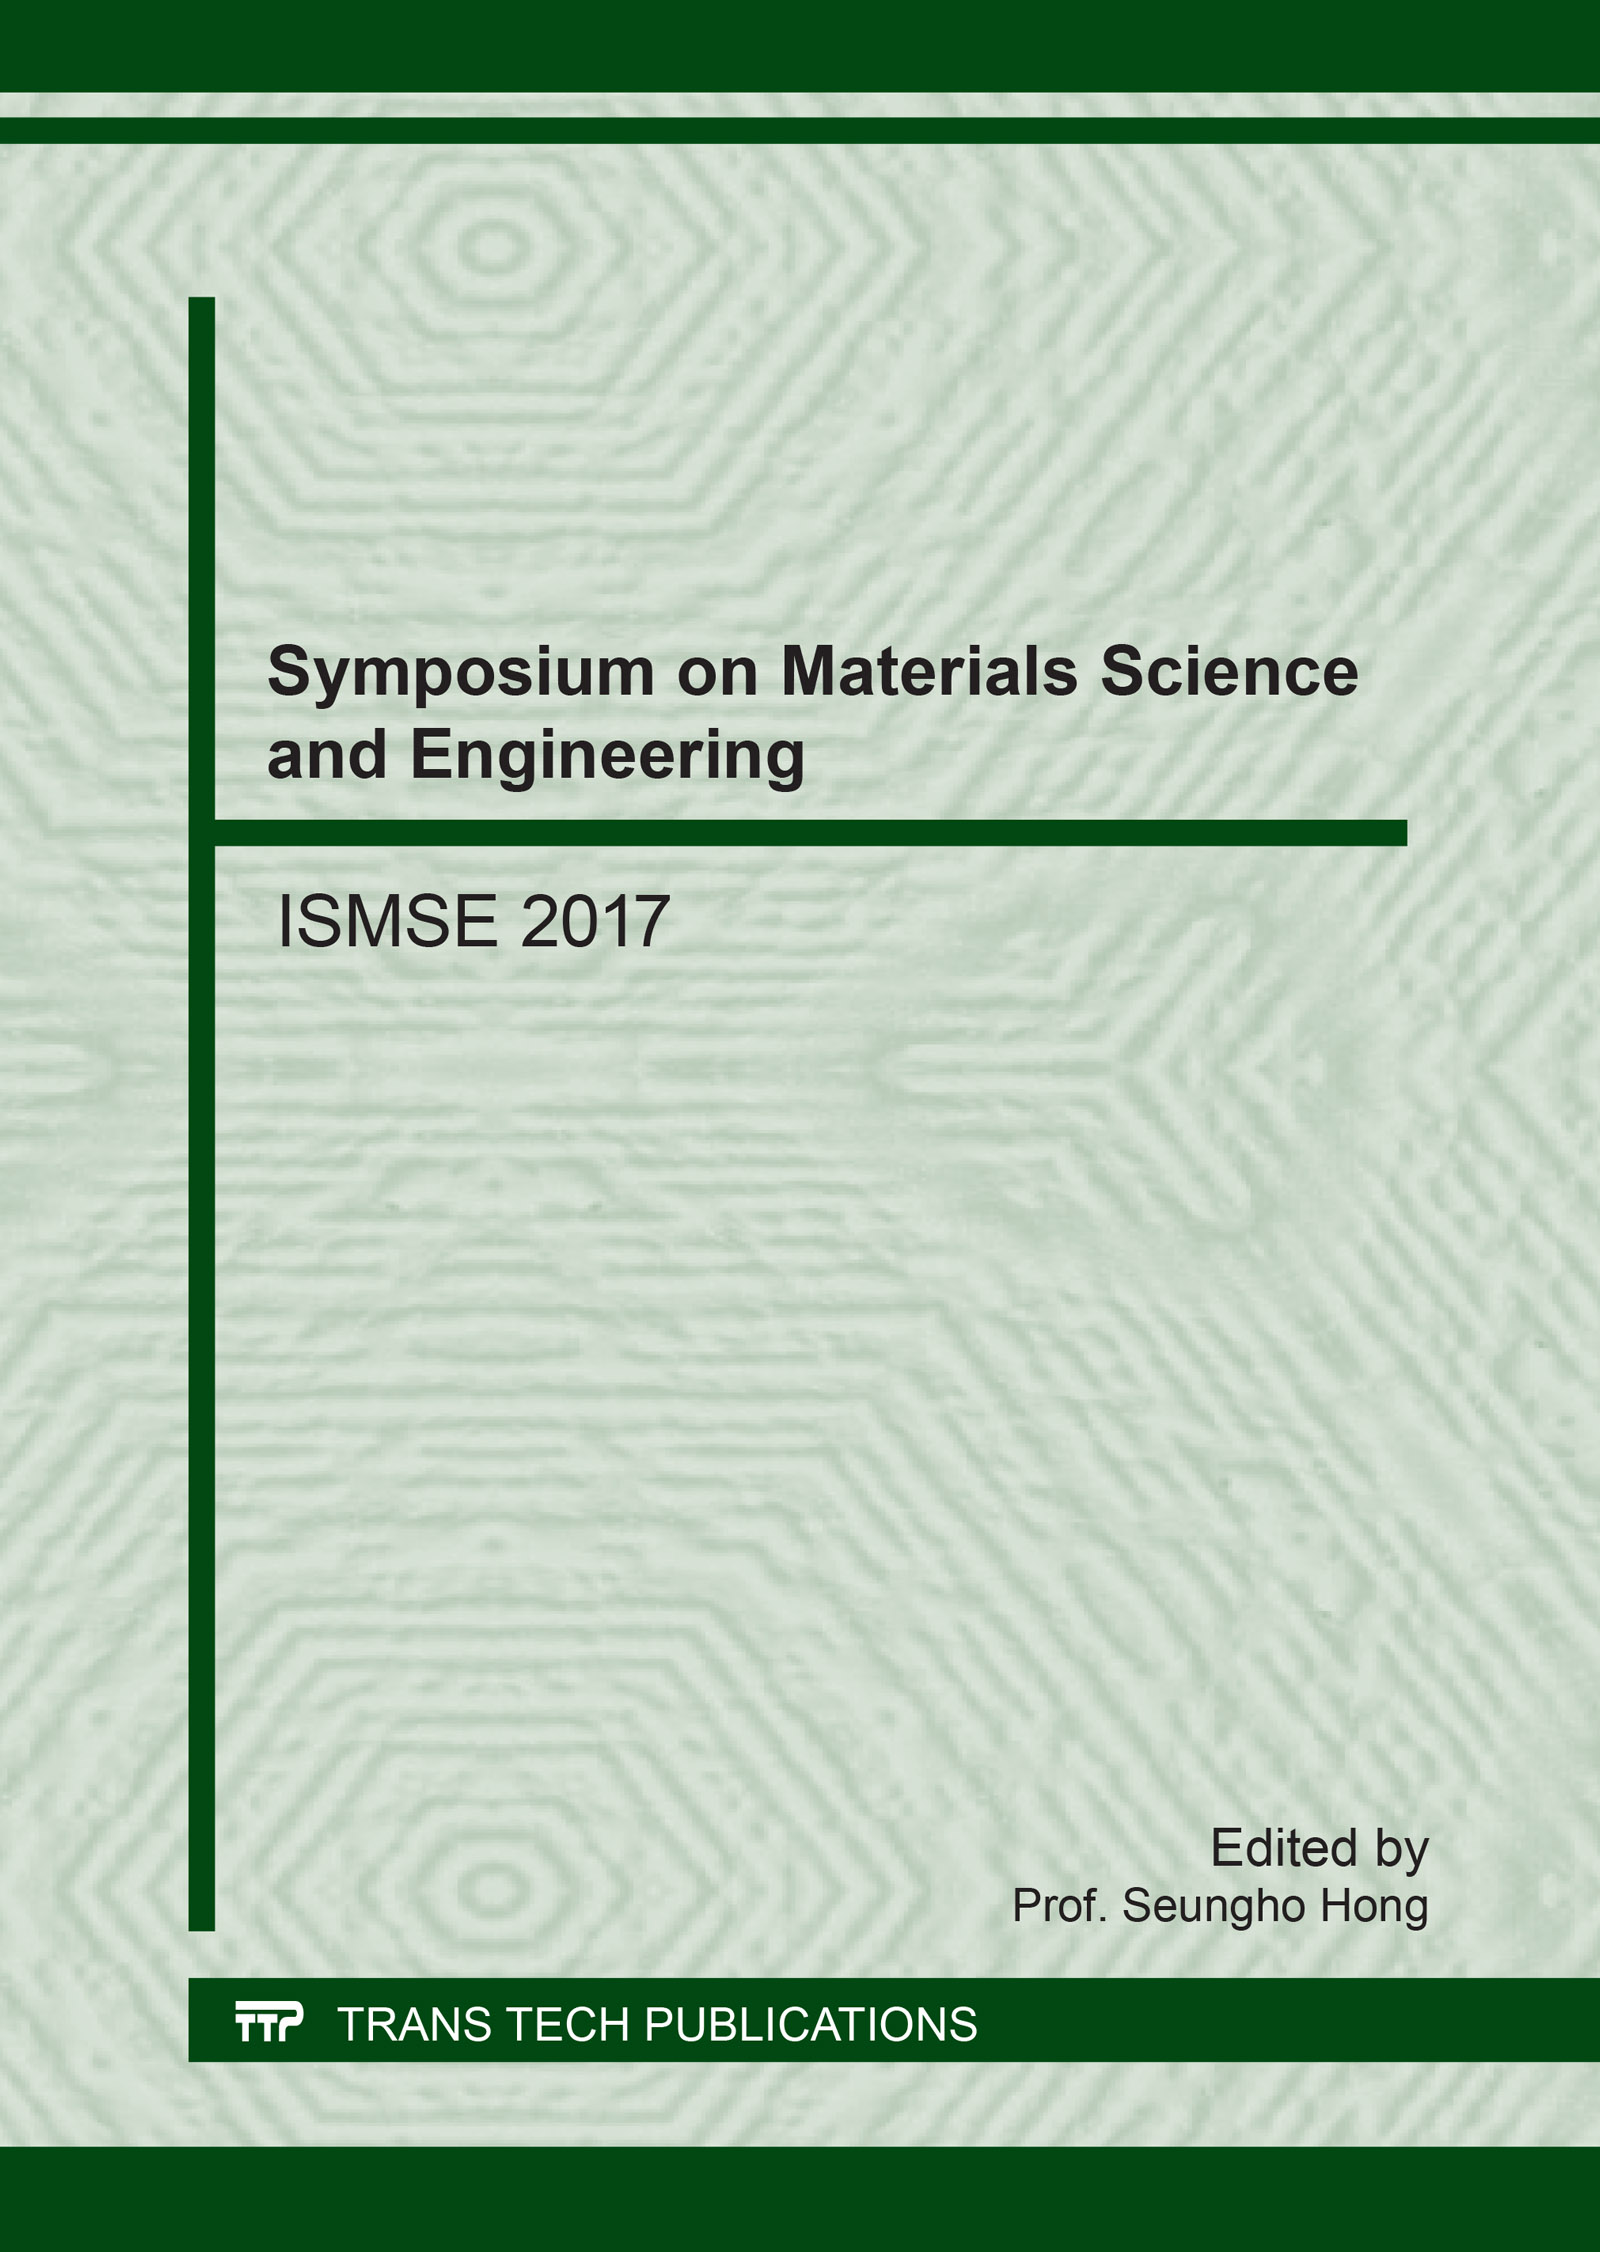 Symposium on Materials Science and Engineering